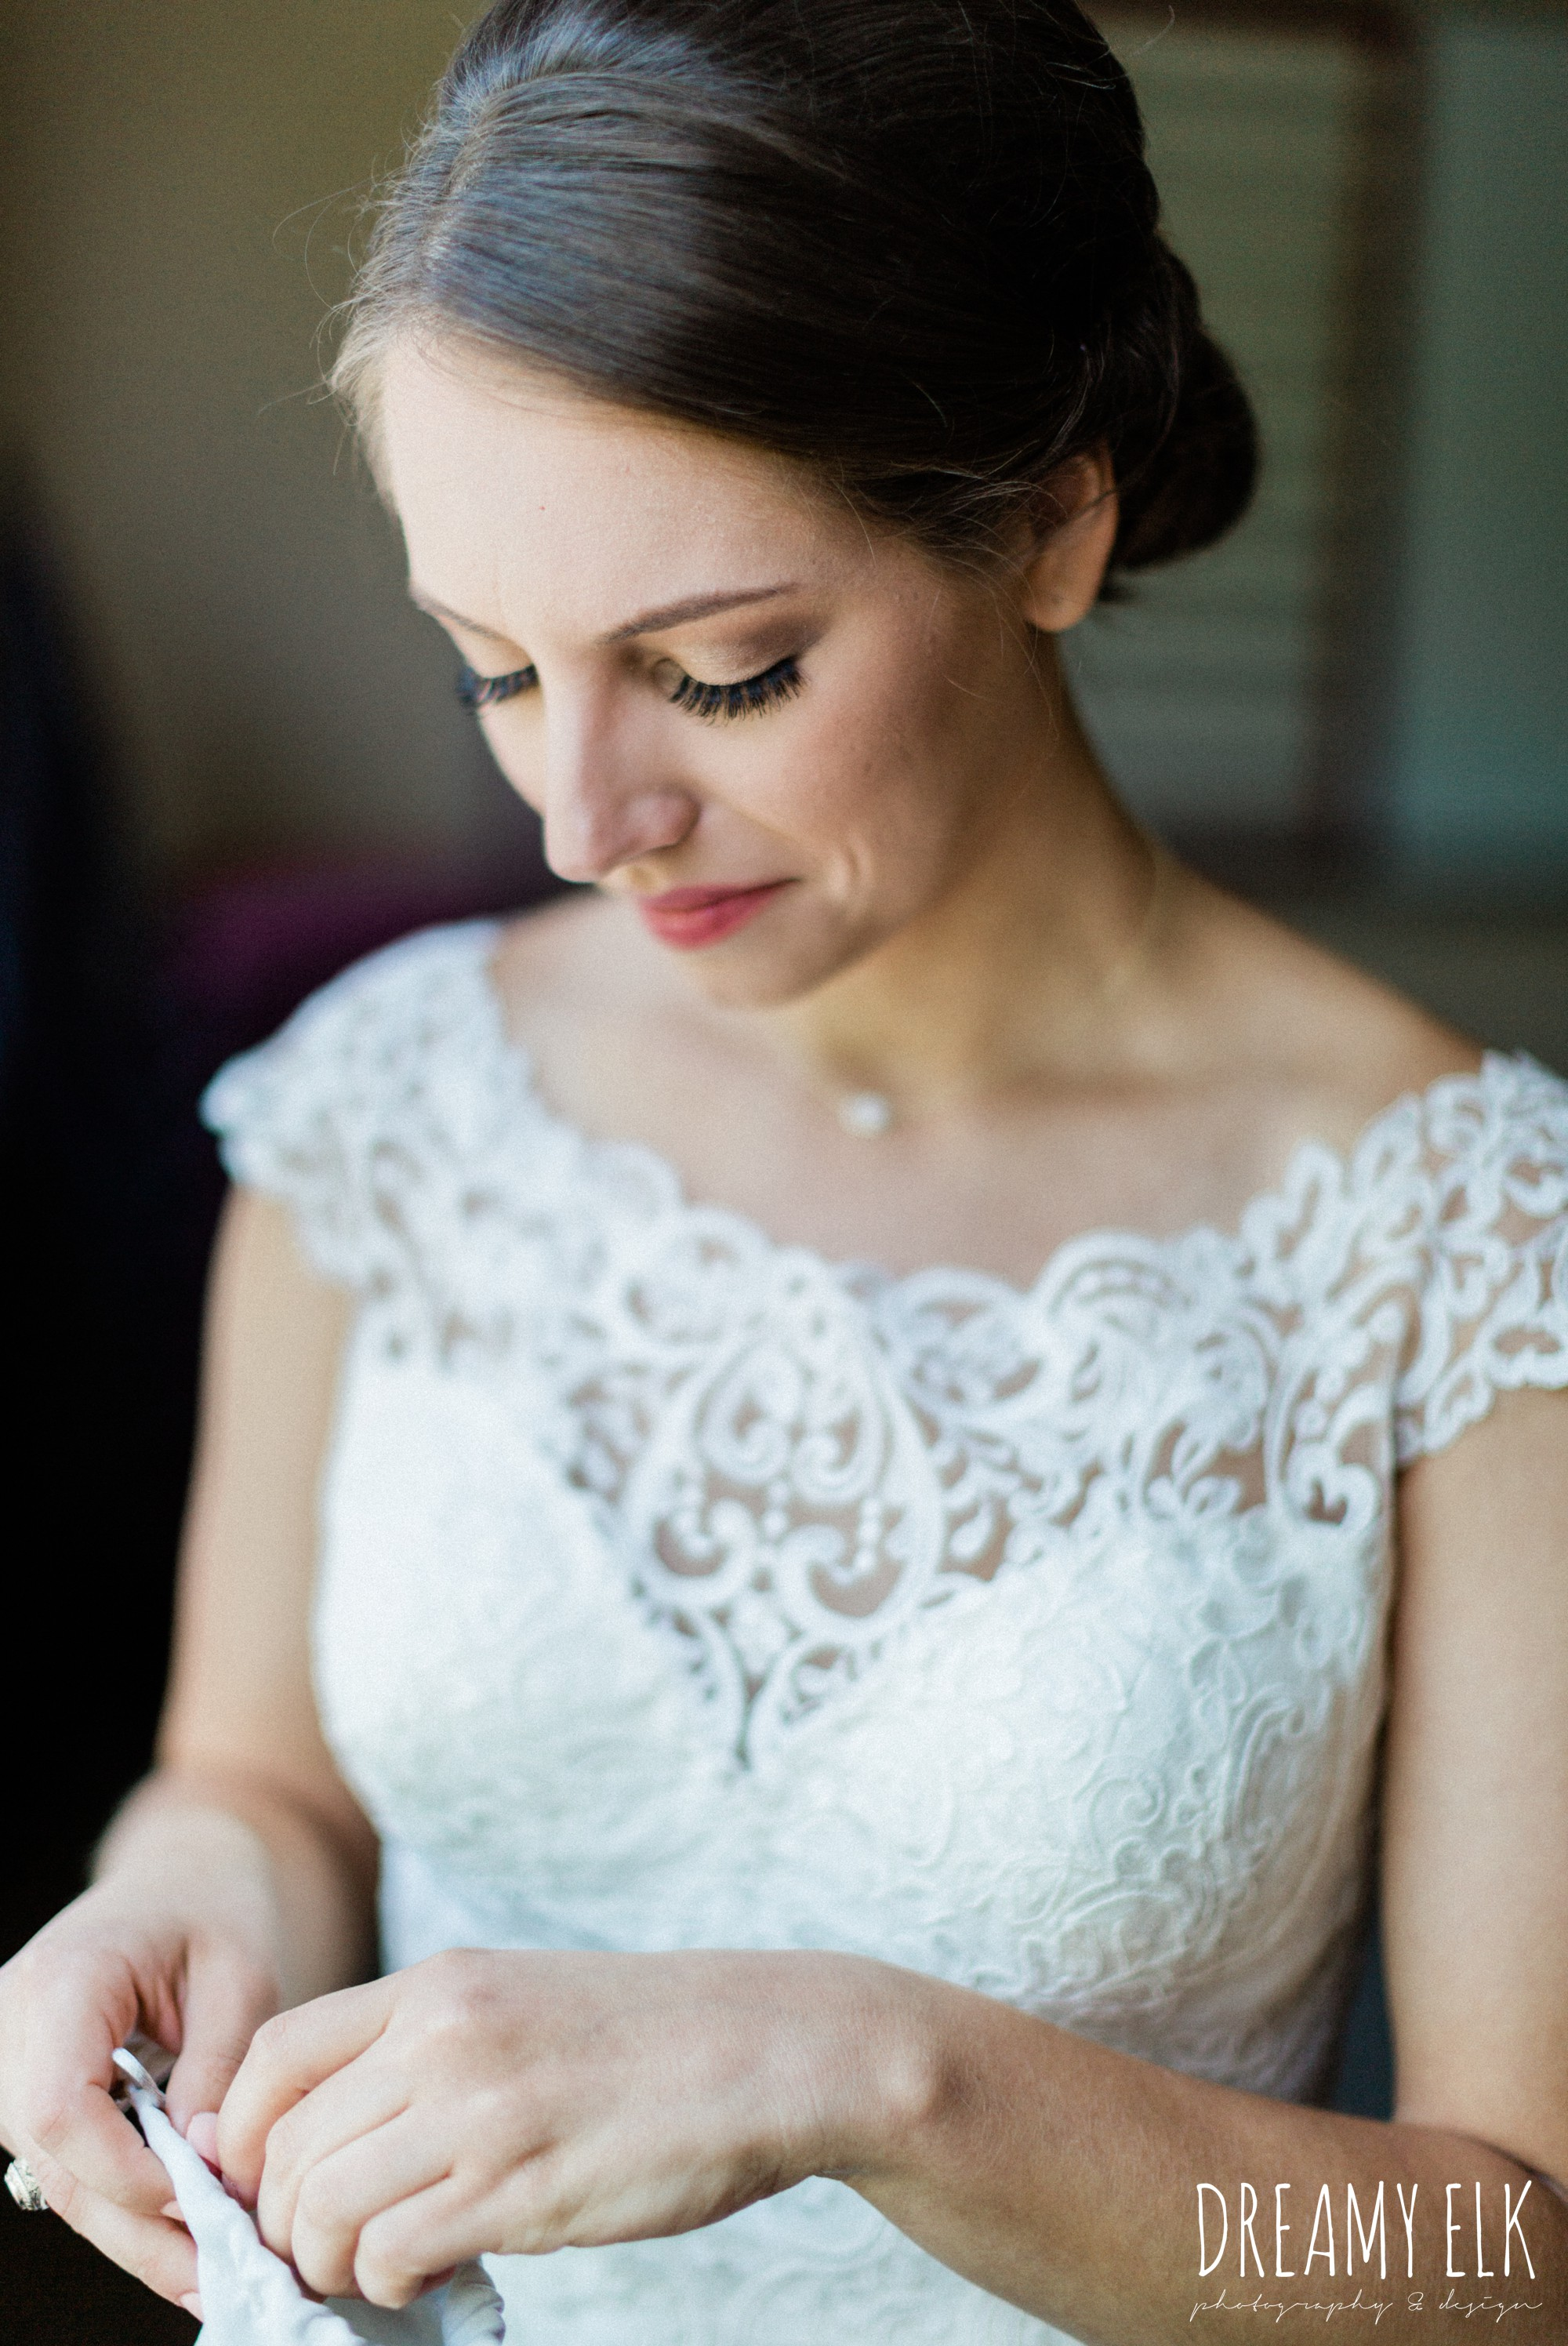 bride getting ready, essense of australia, spring wedding photo college station texas, dreamy elk photography and design